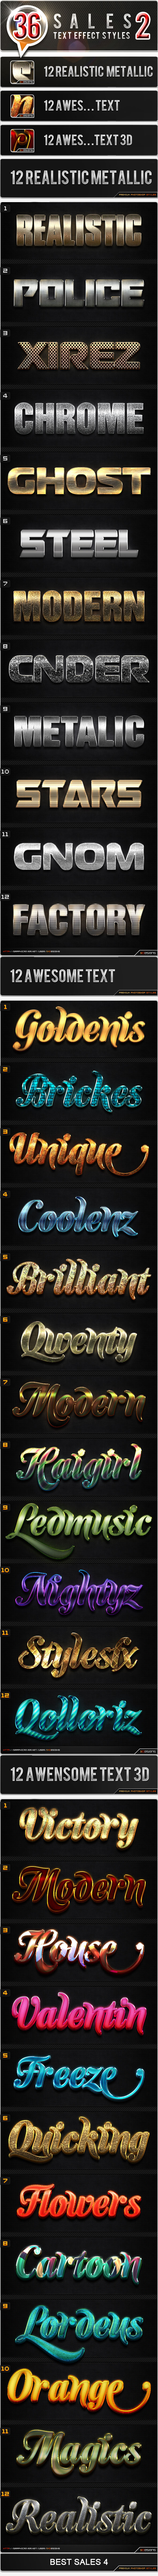 36 Sales 2 Bundle - Text Effects Styles